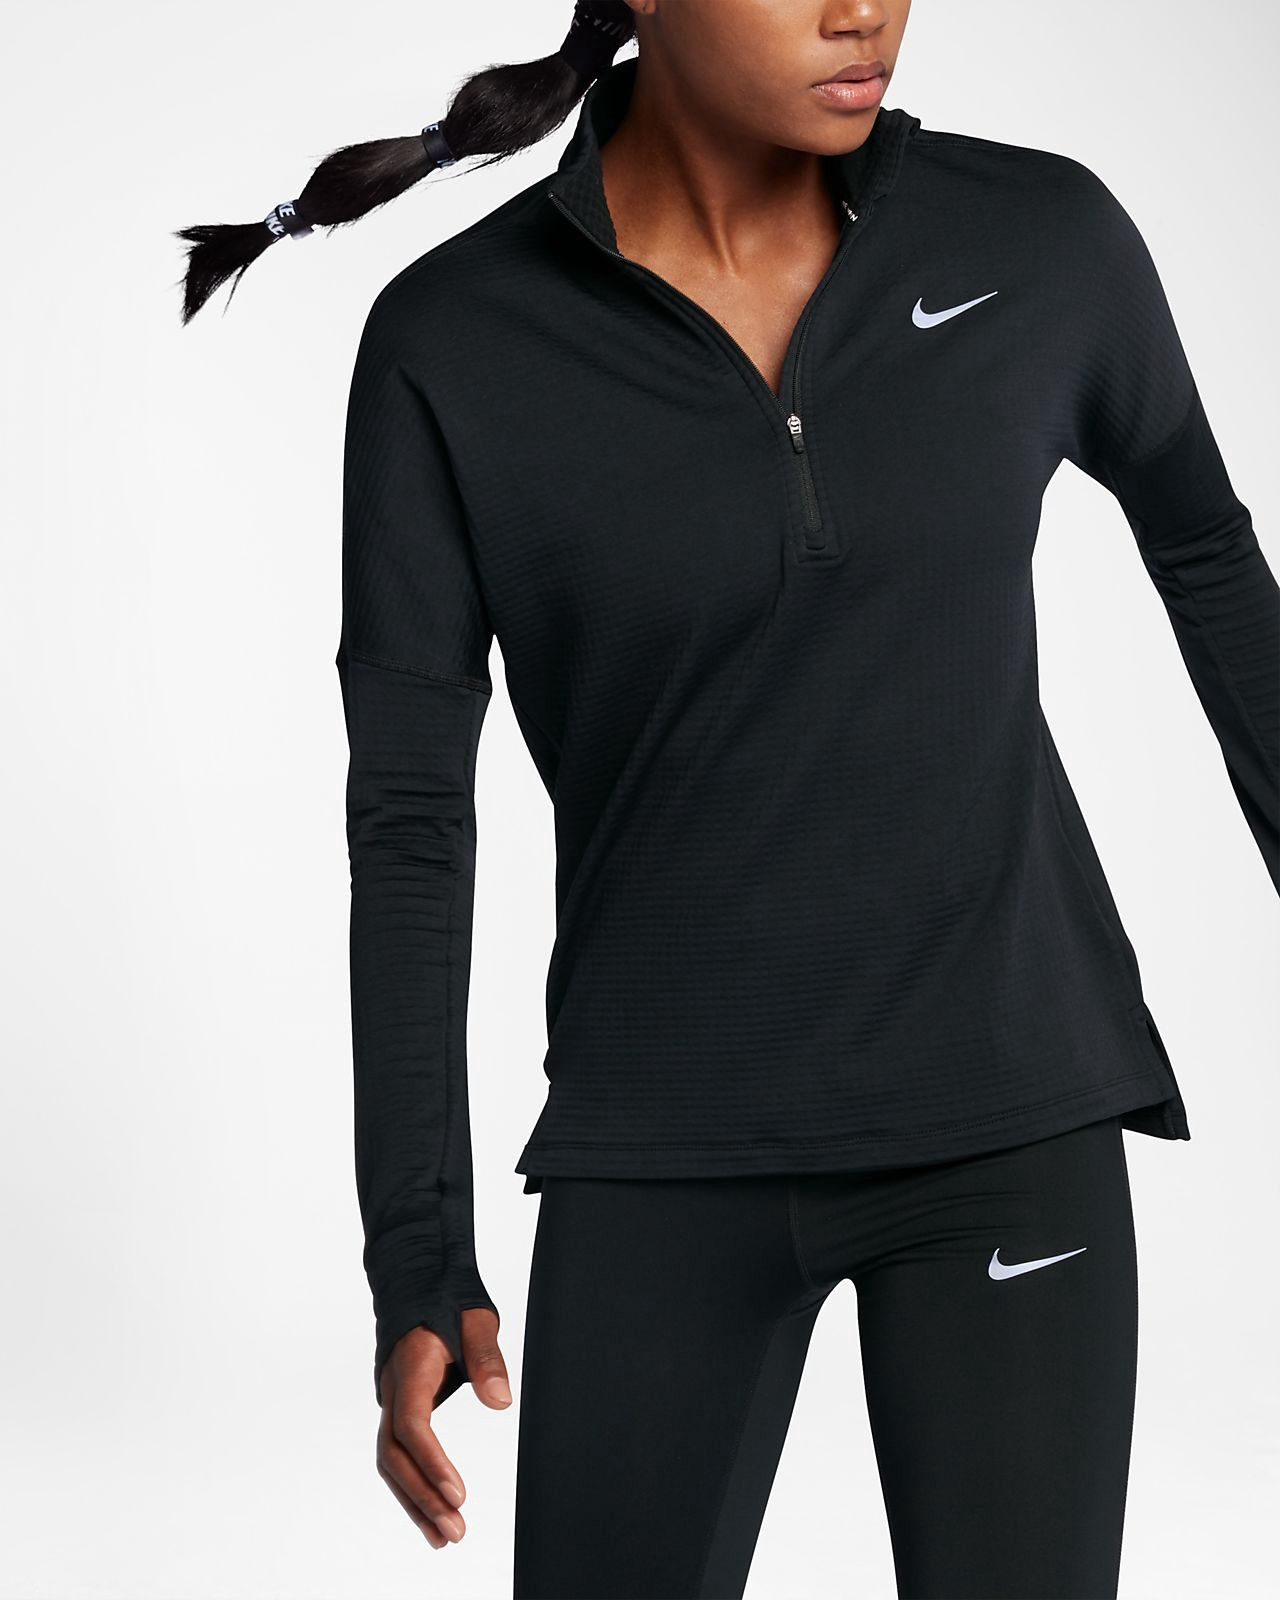 e3ad3f3080b Nike Therma Sphere Element Women s Long Sleeve Running Half-Zip Top - M  (8–10)